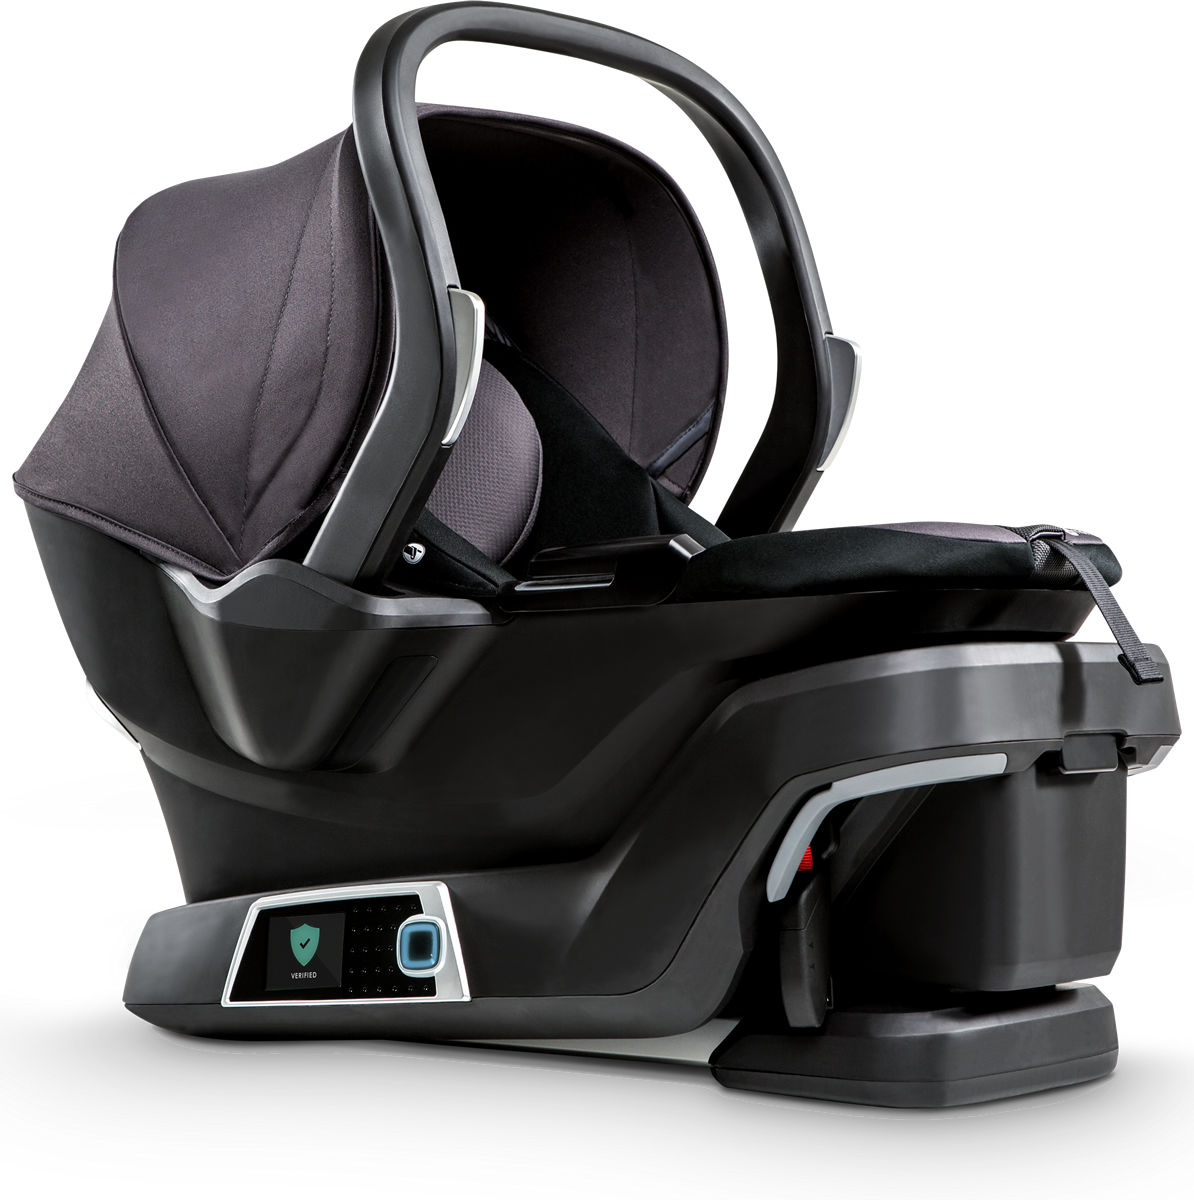 4moms Self-Installing Infant Car Seat Black